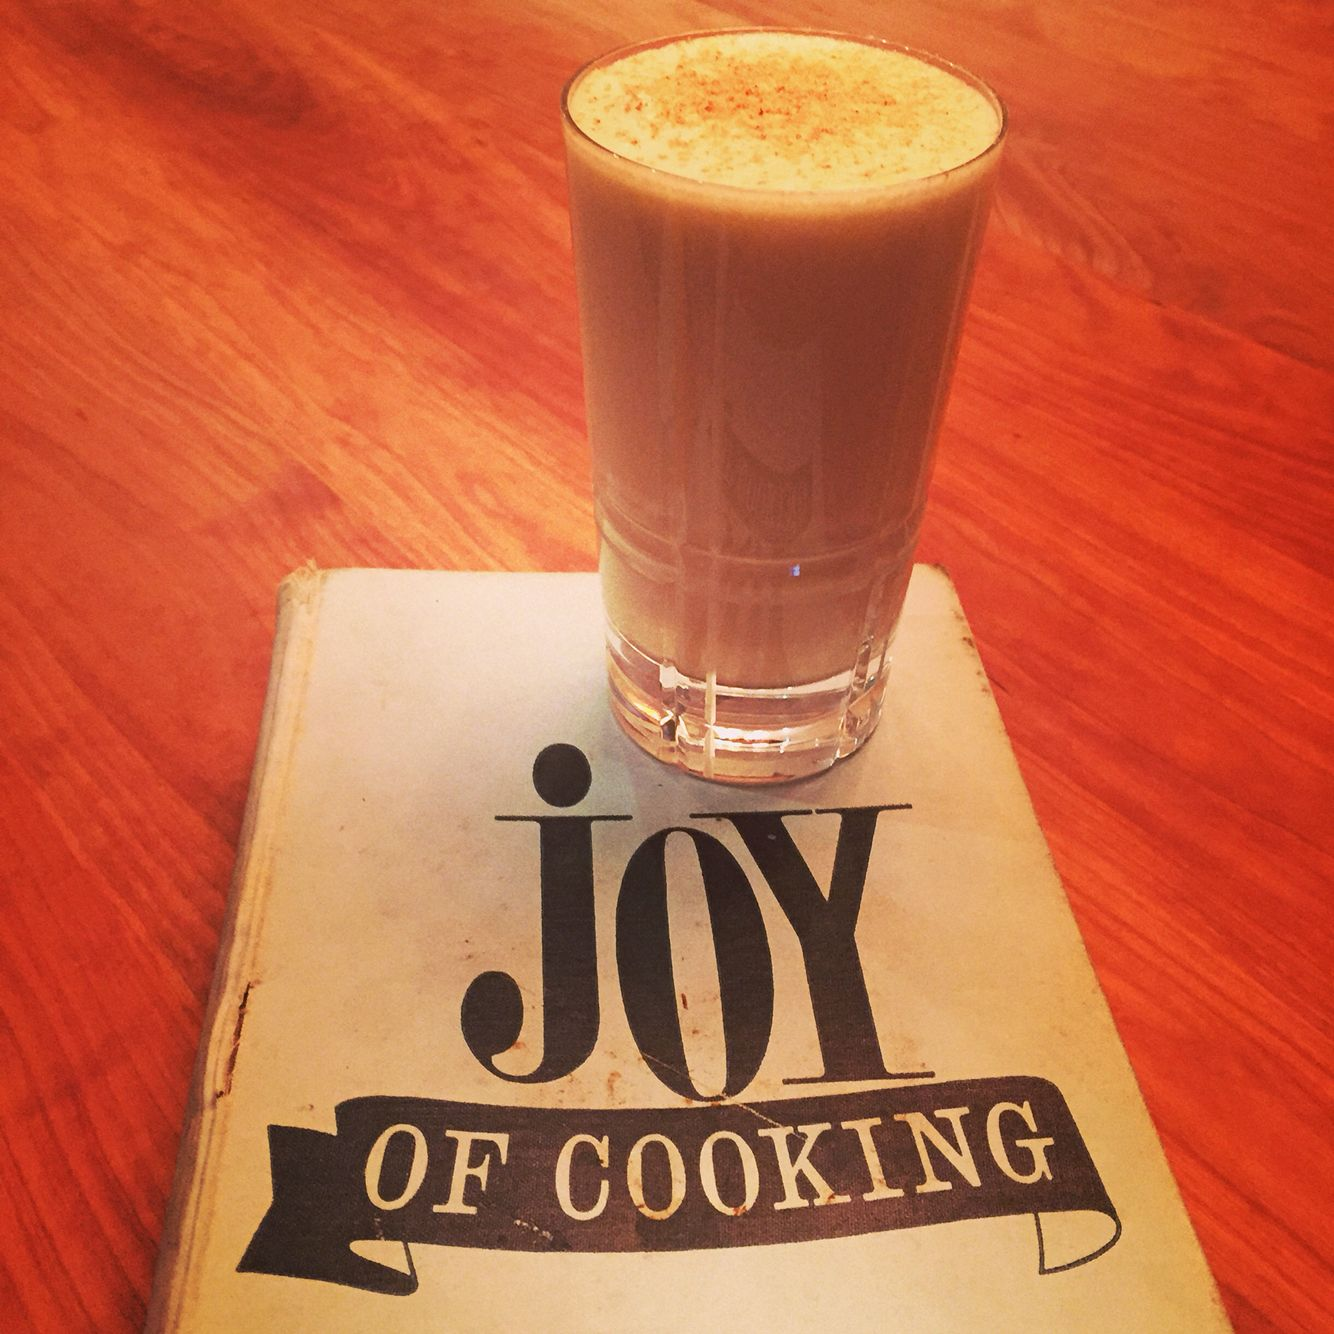 Eggnog (medium thick): In a small bowl, beat 1 egg yolk until light. Beat in slowly: 1 T sugar, 1/4 c cream, 1/8 to 1/4 c rum/brandy/whiskey, a few grains salt. Whip 1 egg white separately until stiff. Fold white lightly into other ingredients. Transfer to punch glass and garnish with grated nutmeg. (From the Joy of Cooking, 1964)